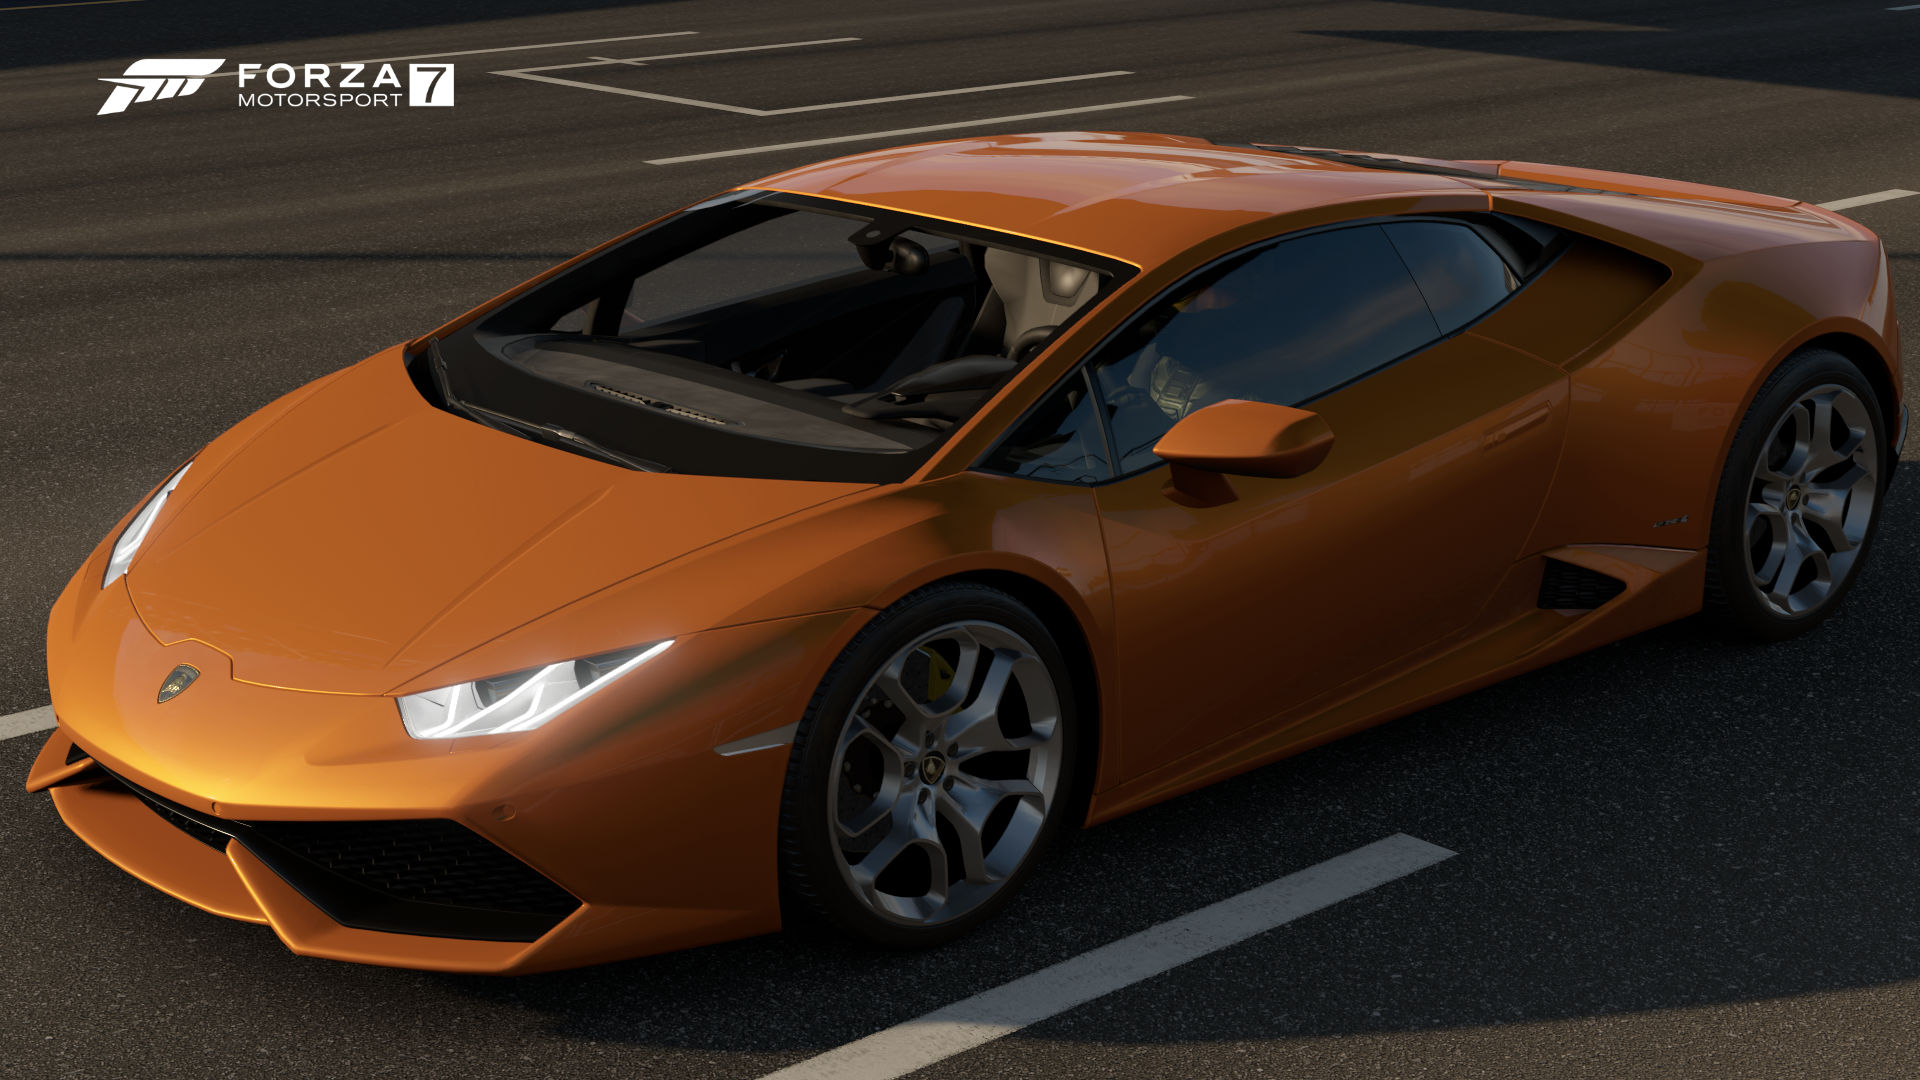 The 2014 Lamborghini Huracán LP 610 4 In Forza Motorsport 7